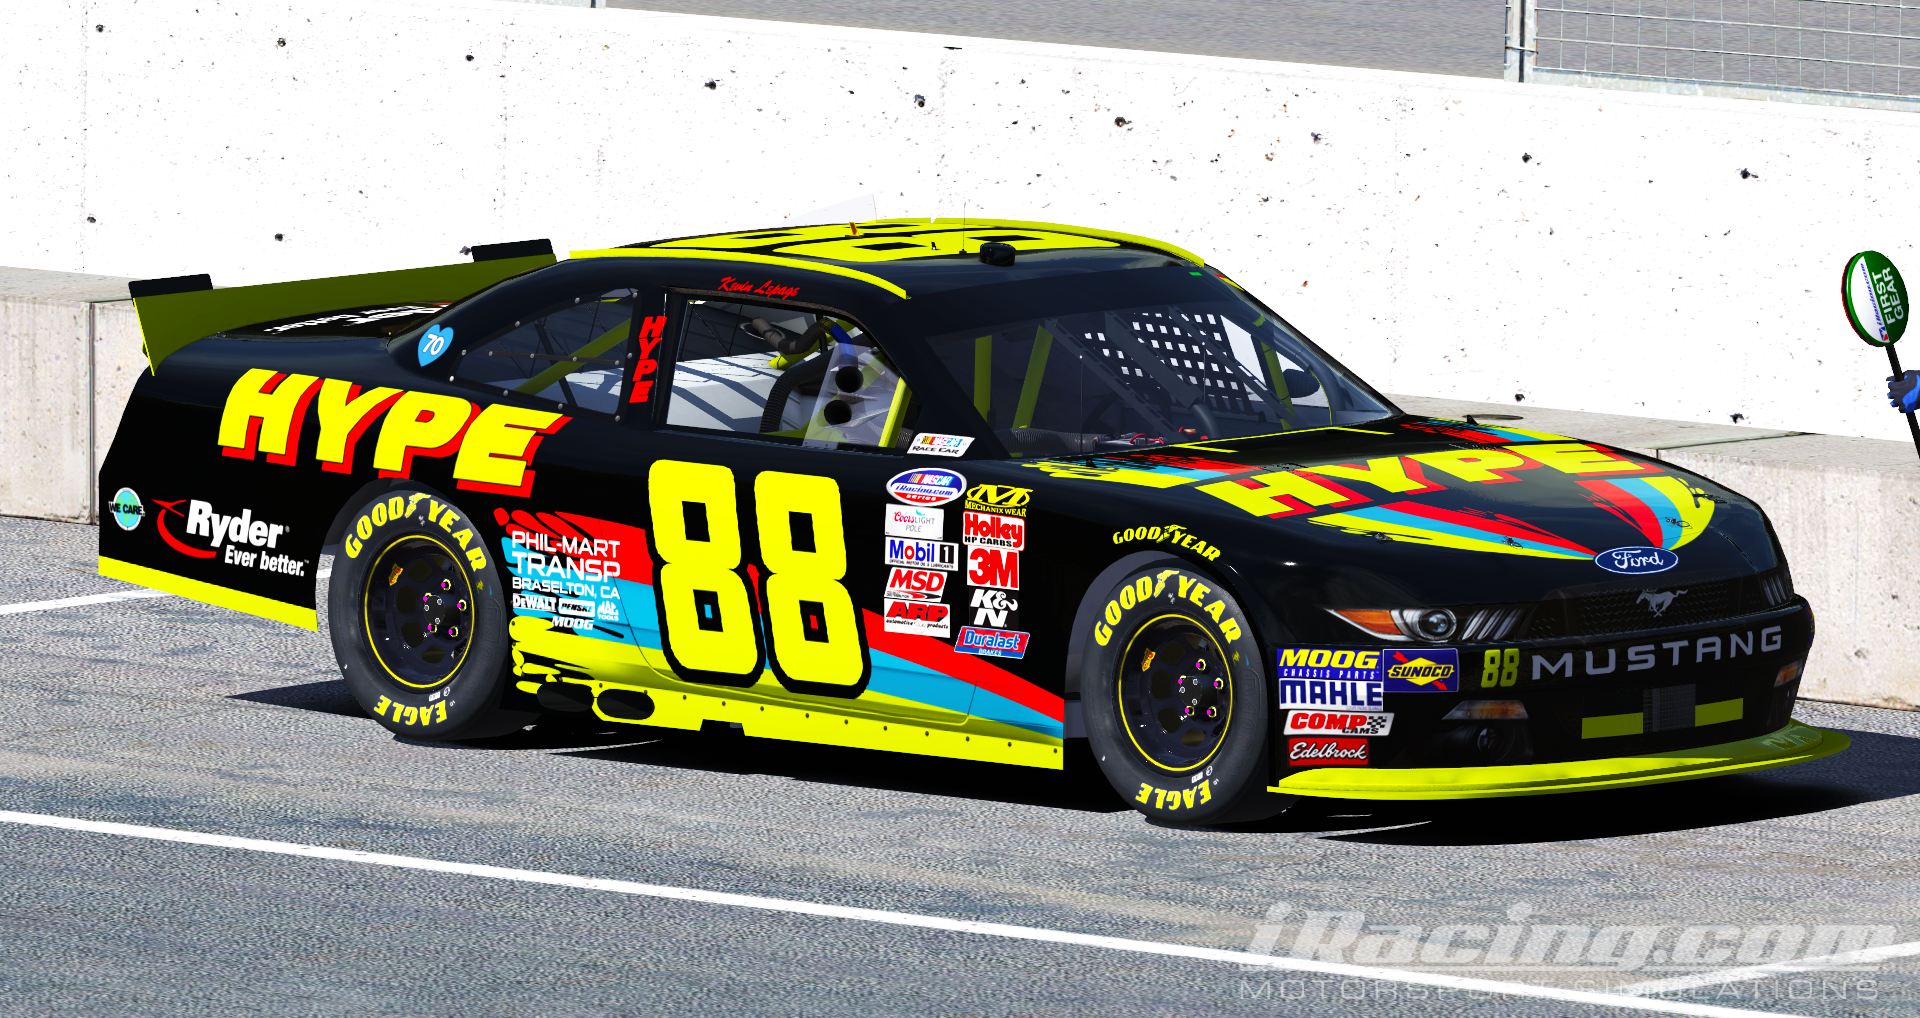 1997 Kevin Lepage Hype Energy Drink Mustang By Ryan A Williams